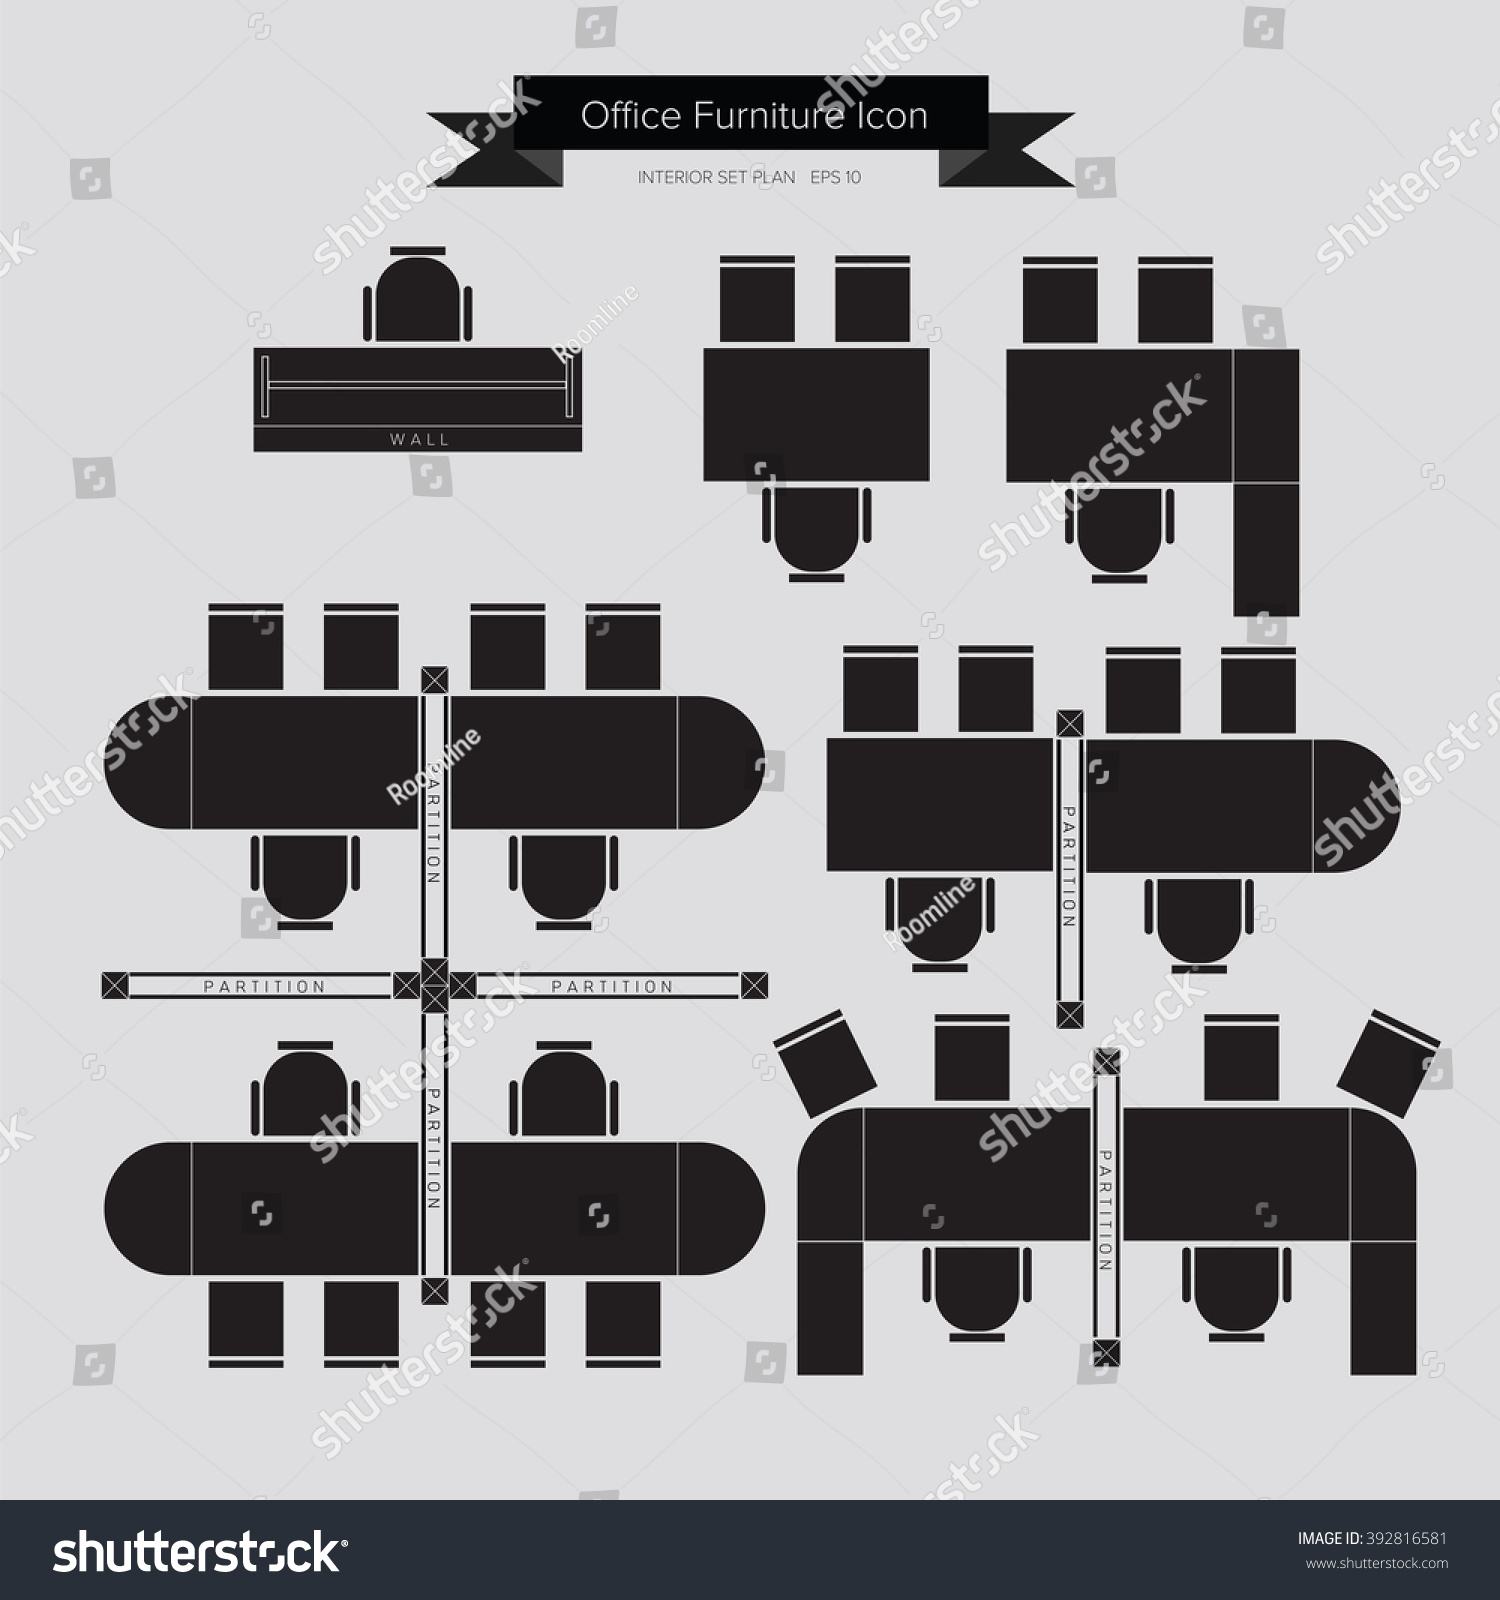 Office furniture top view - Office Furniture Icon Top View For Interior Plan Vector Eps10